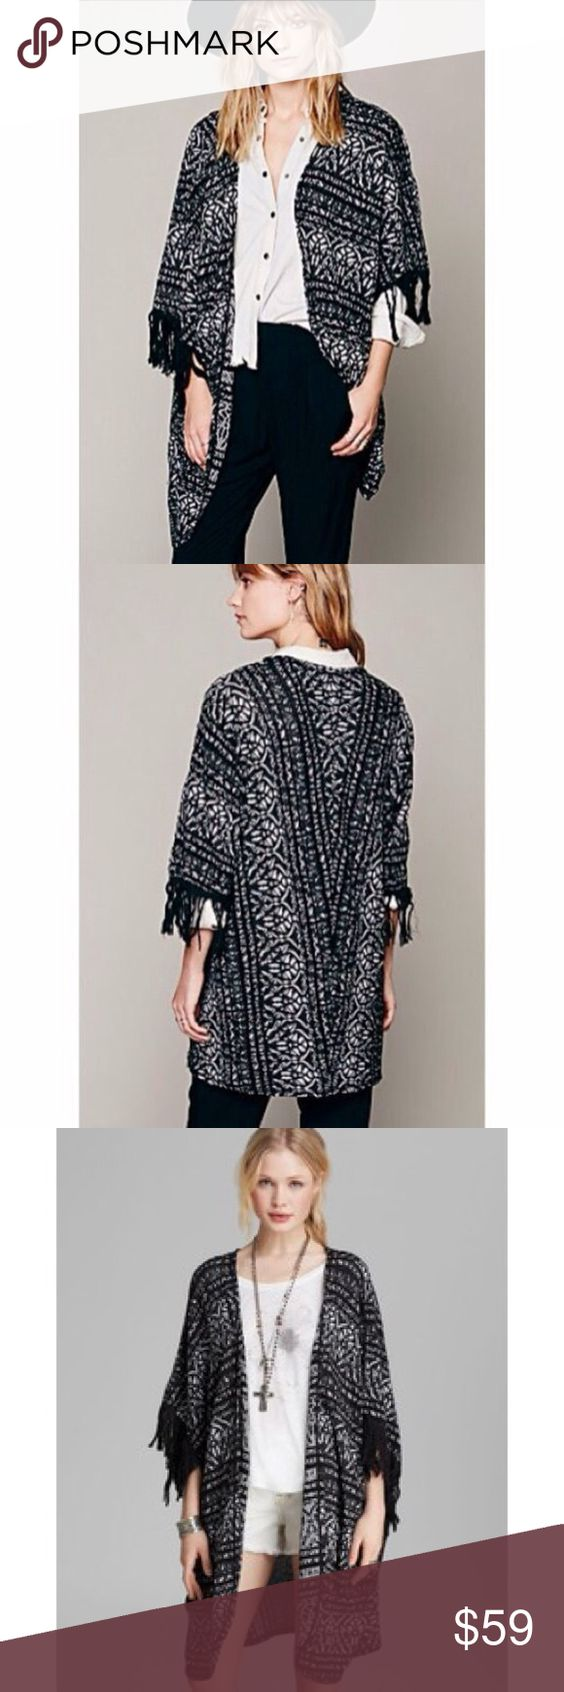 Free People Black White Aztec Kimono Cardigan A FREE PEOPLE black and white oversized knit kimono with an Aztec pattern and fringe tassels... Lightweight enough for summer with a pair of shorts or as a beach cover up... No signs of wear or tear, size M/L... A very cool statement piece... Comment with any questions! Free People Sweaters Shrugs & Ponchos: